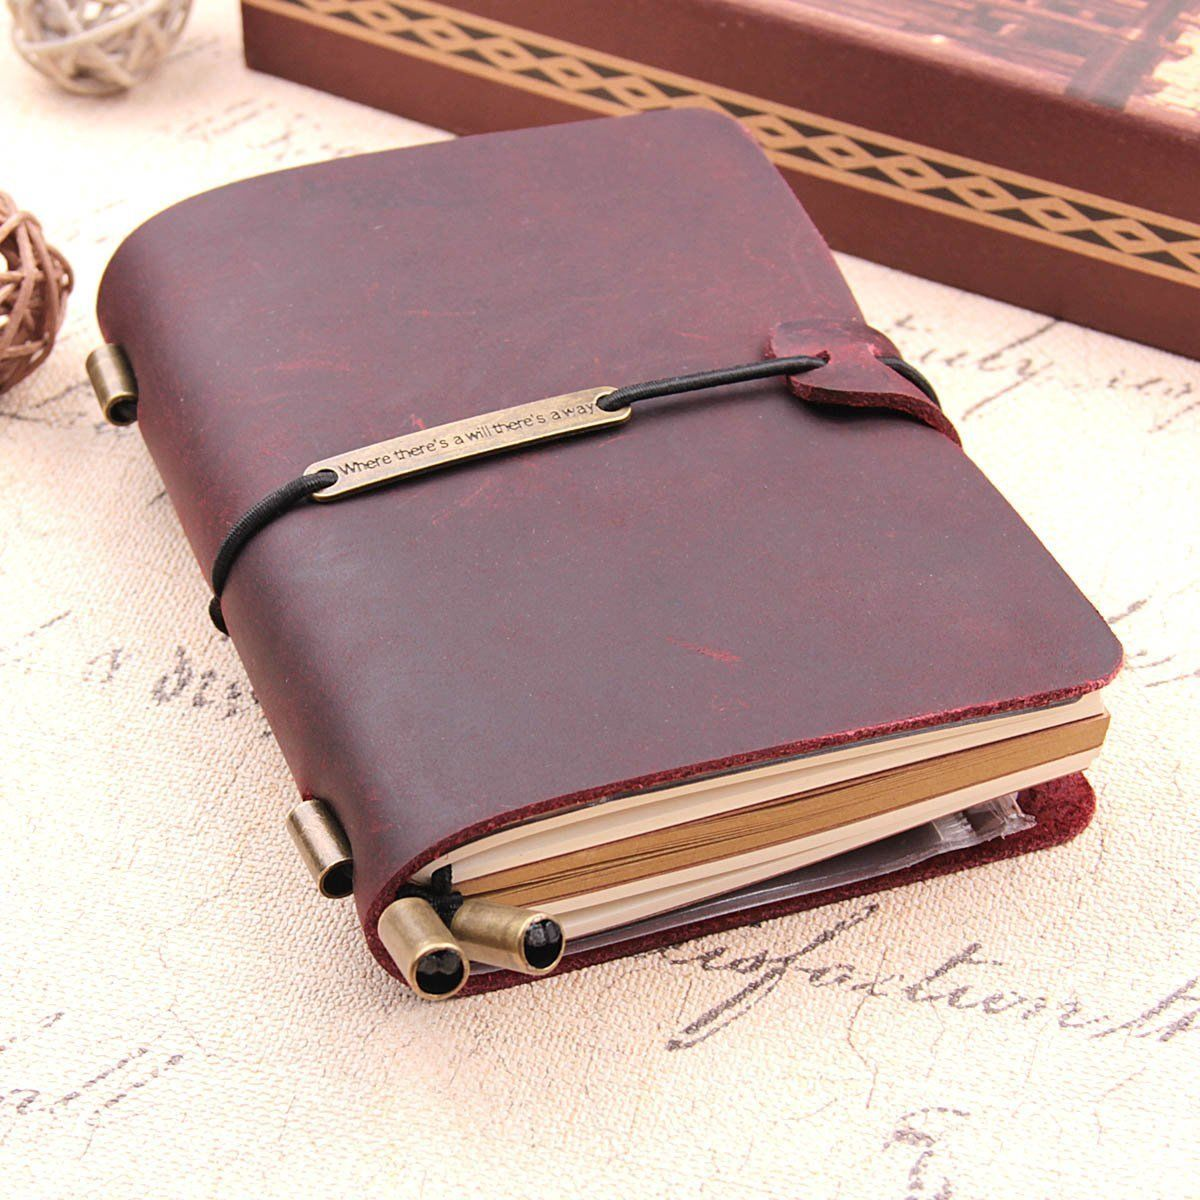 Handmade Traveler's Notebook, Leather Travel Journal Diary For Men & Women,Perfect For Writing,Gifts,Travelers,5.2 X 4 Inches